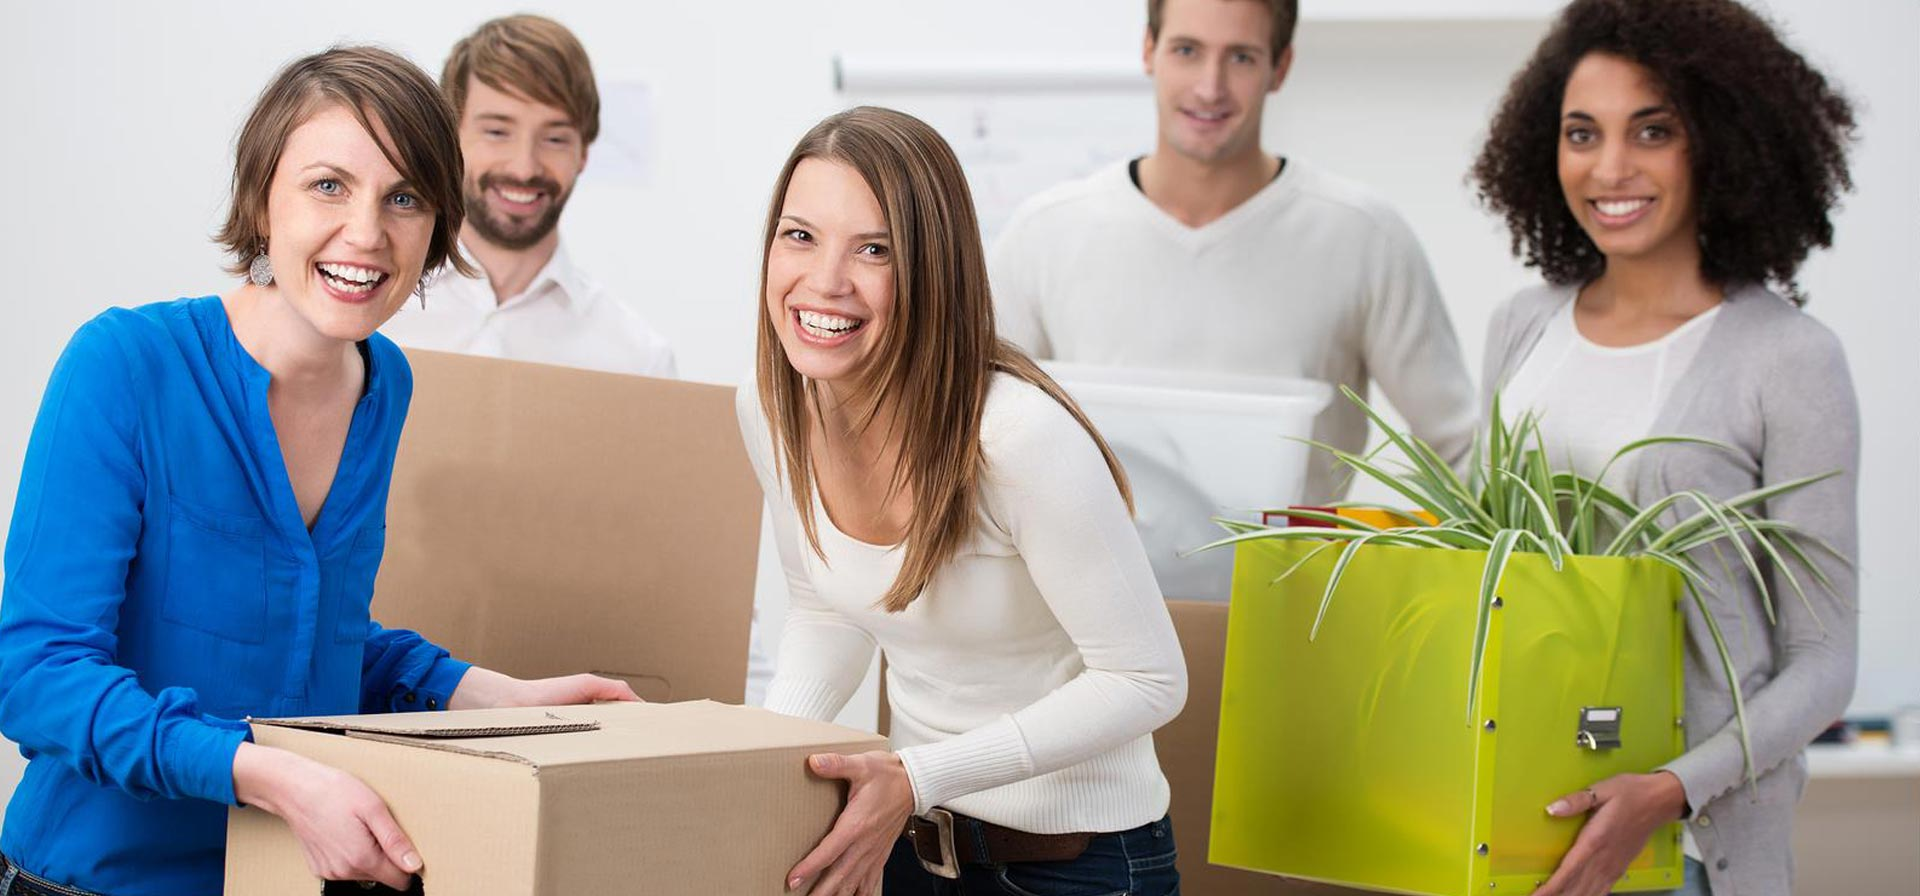 AYS BUSINESS AND HOME MOVES